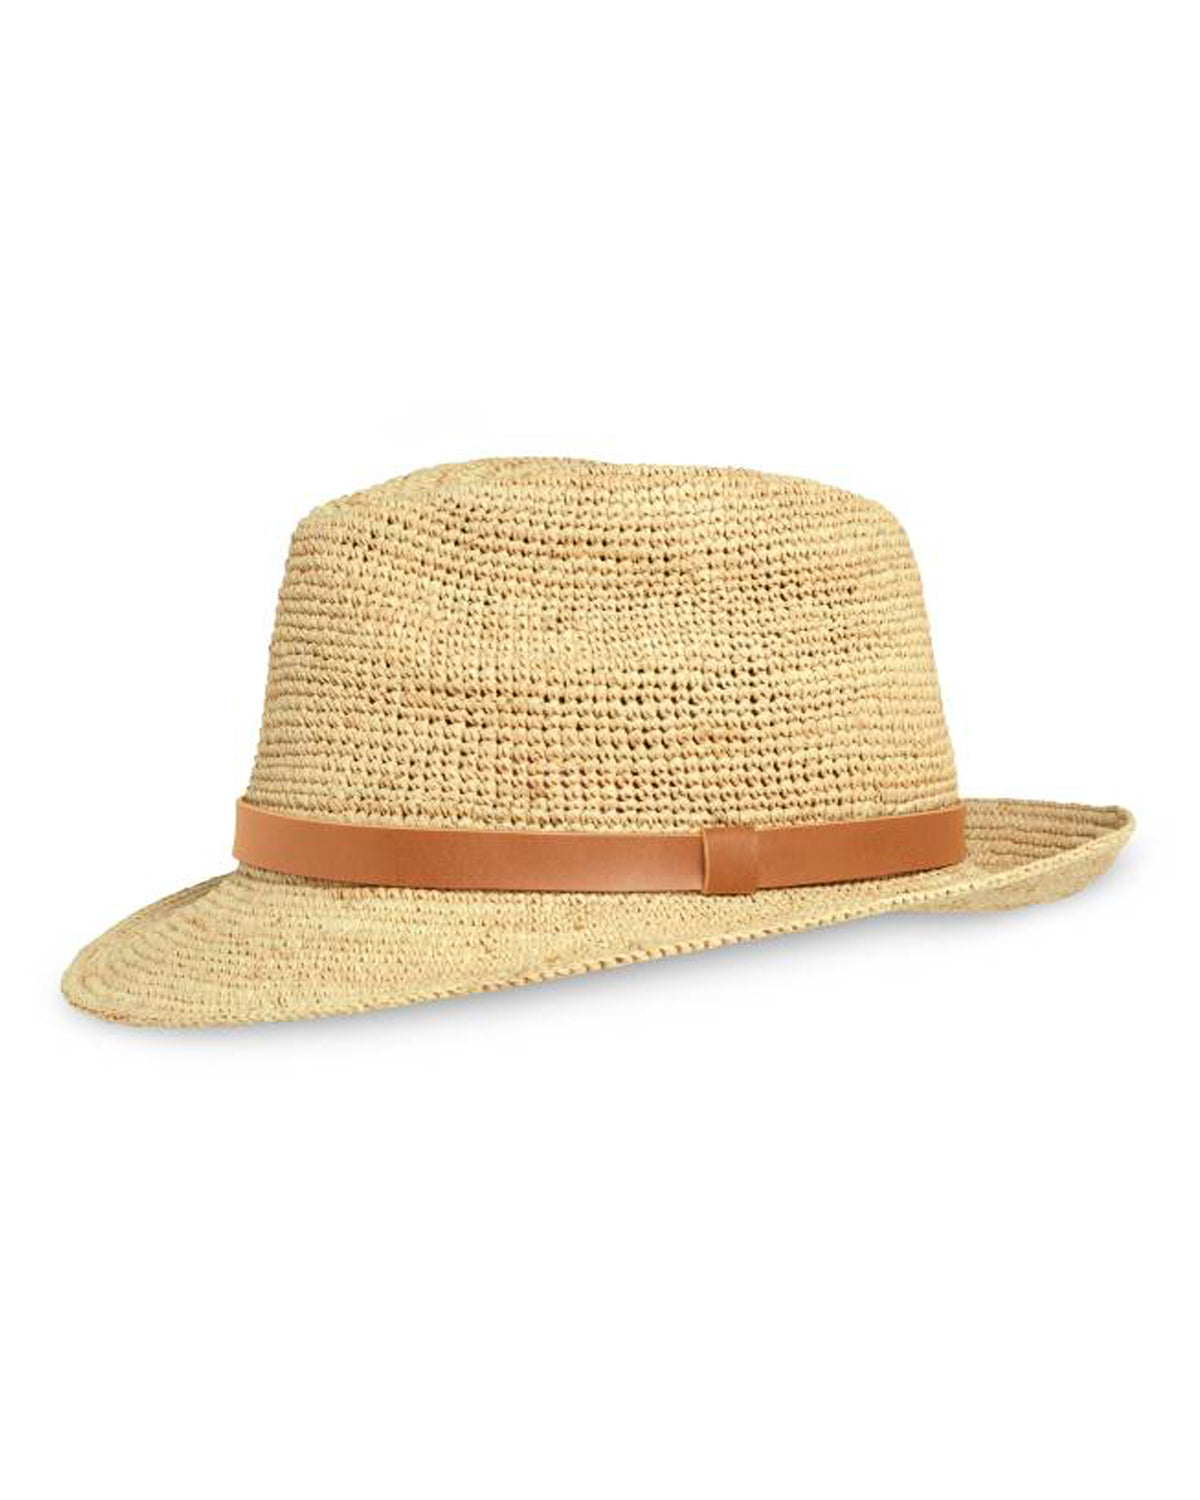 Trinidad Hat - Natural